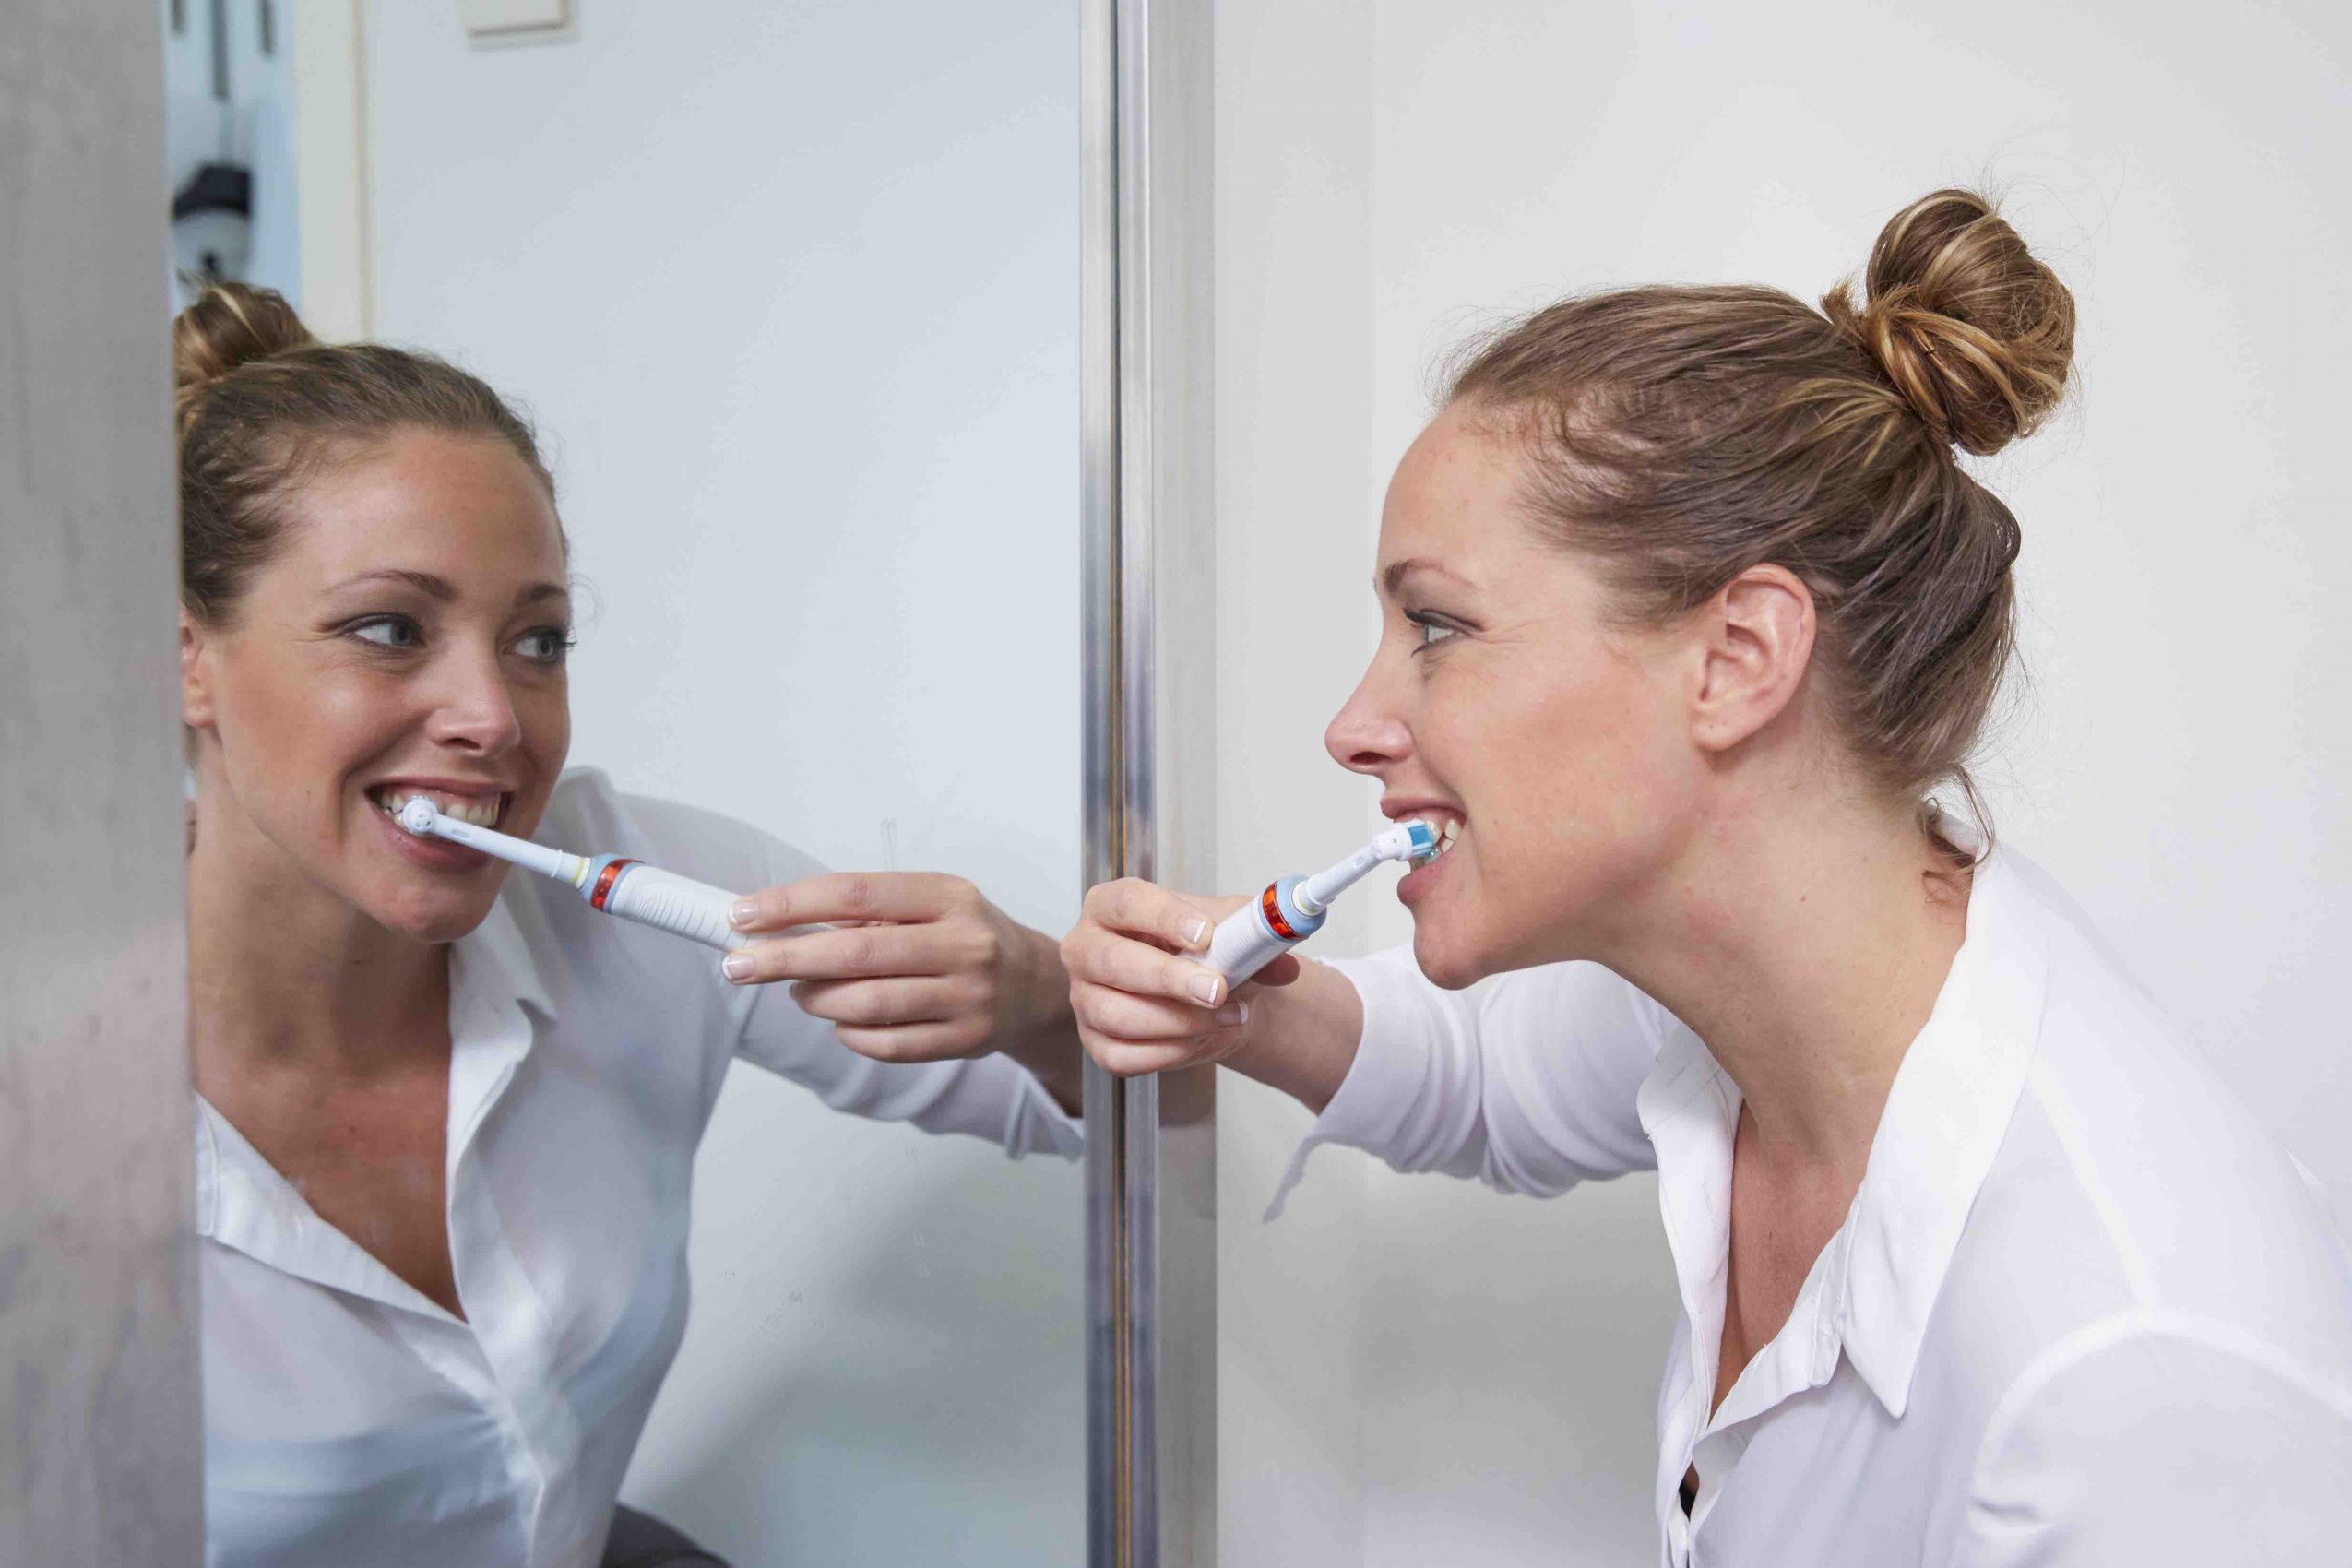 How to keep invisalign clear aligner clean?